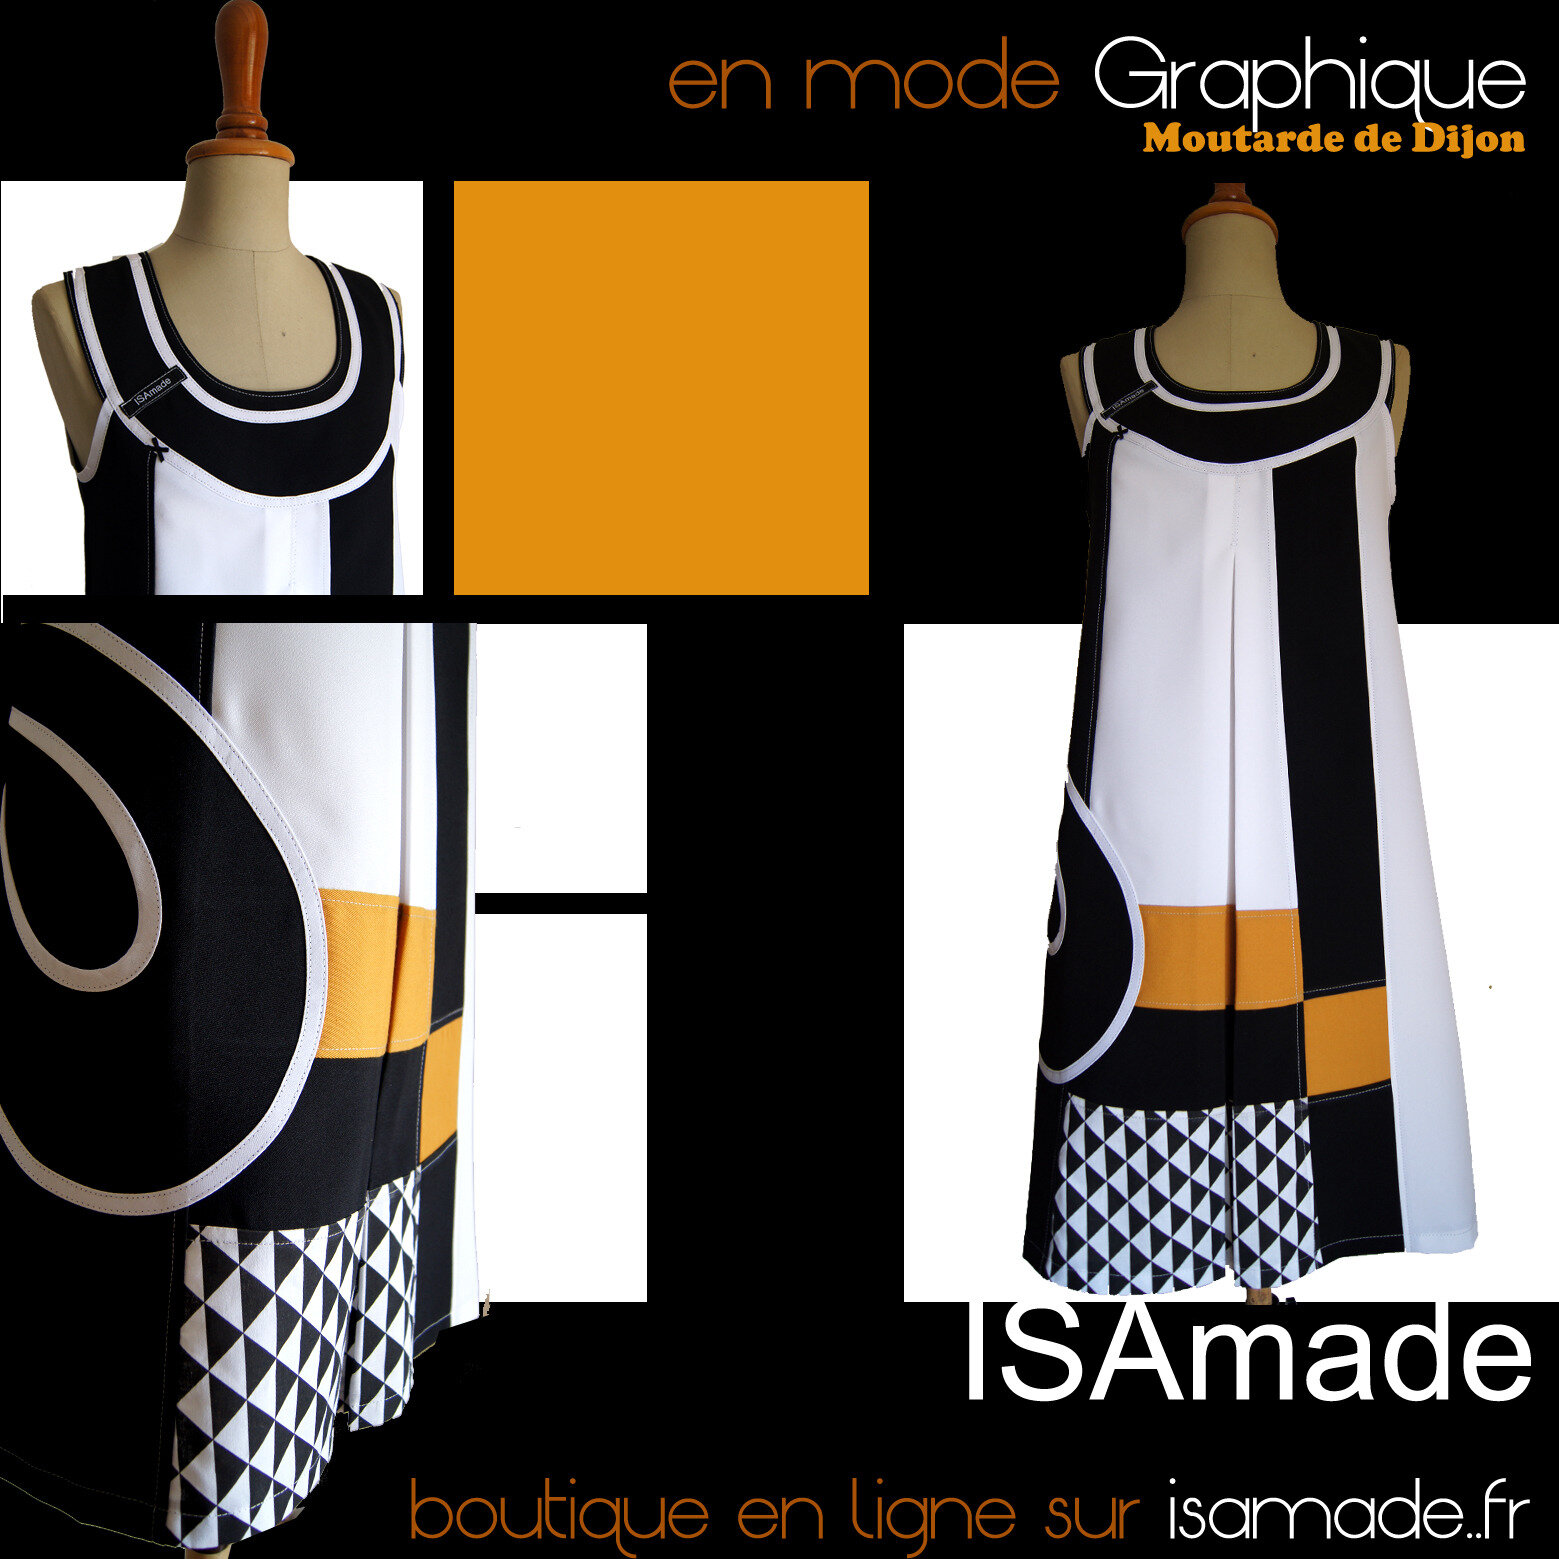 Robe made in France Moutarde graphique